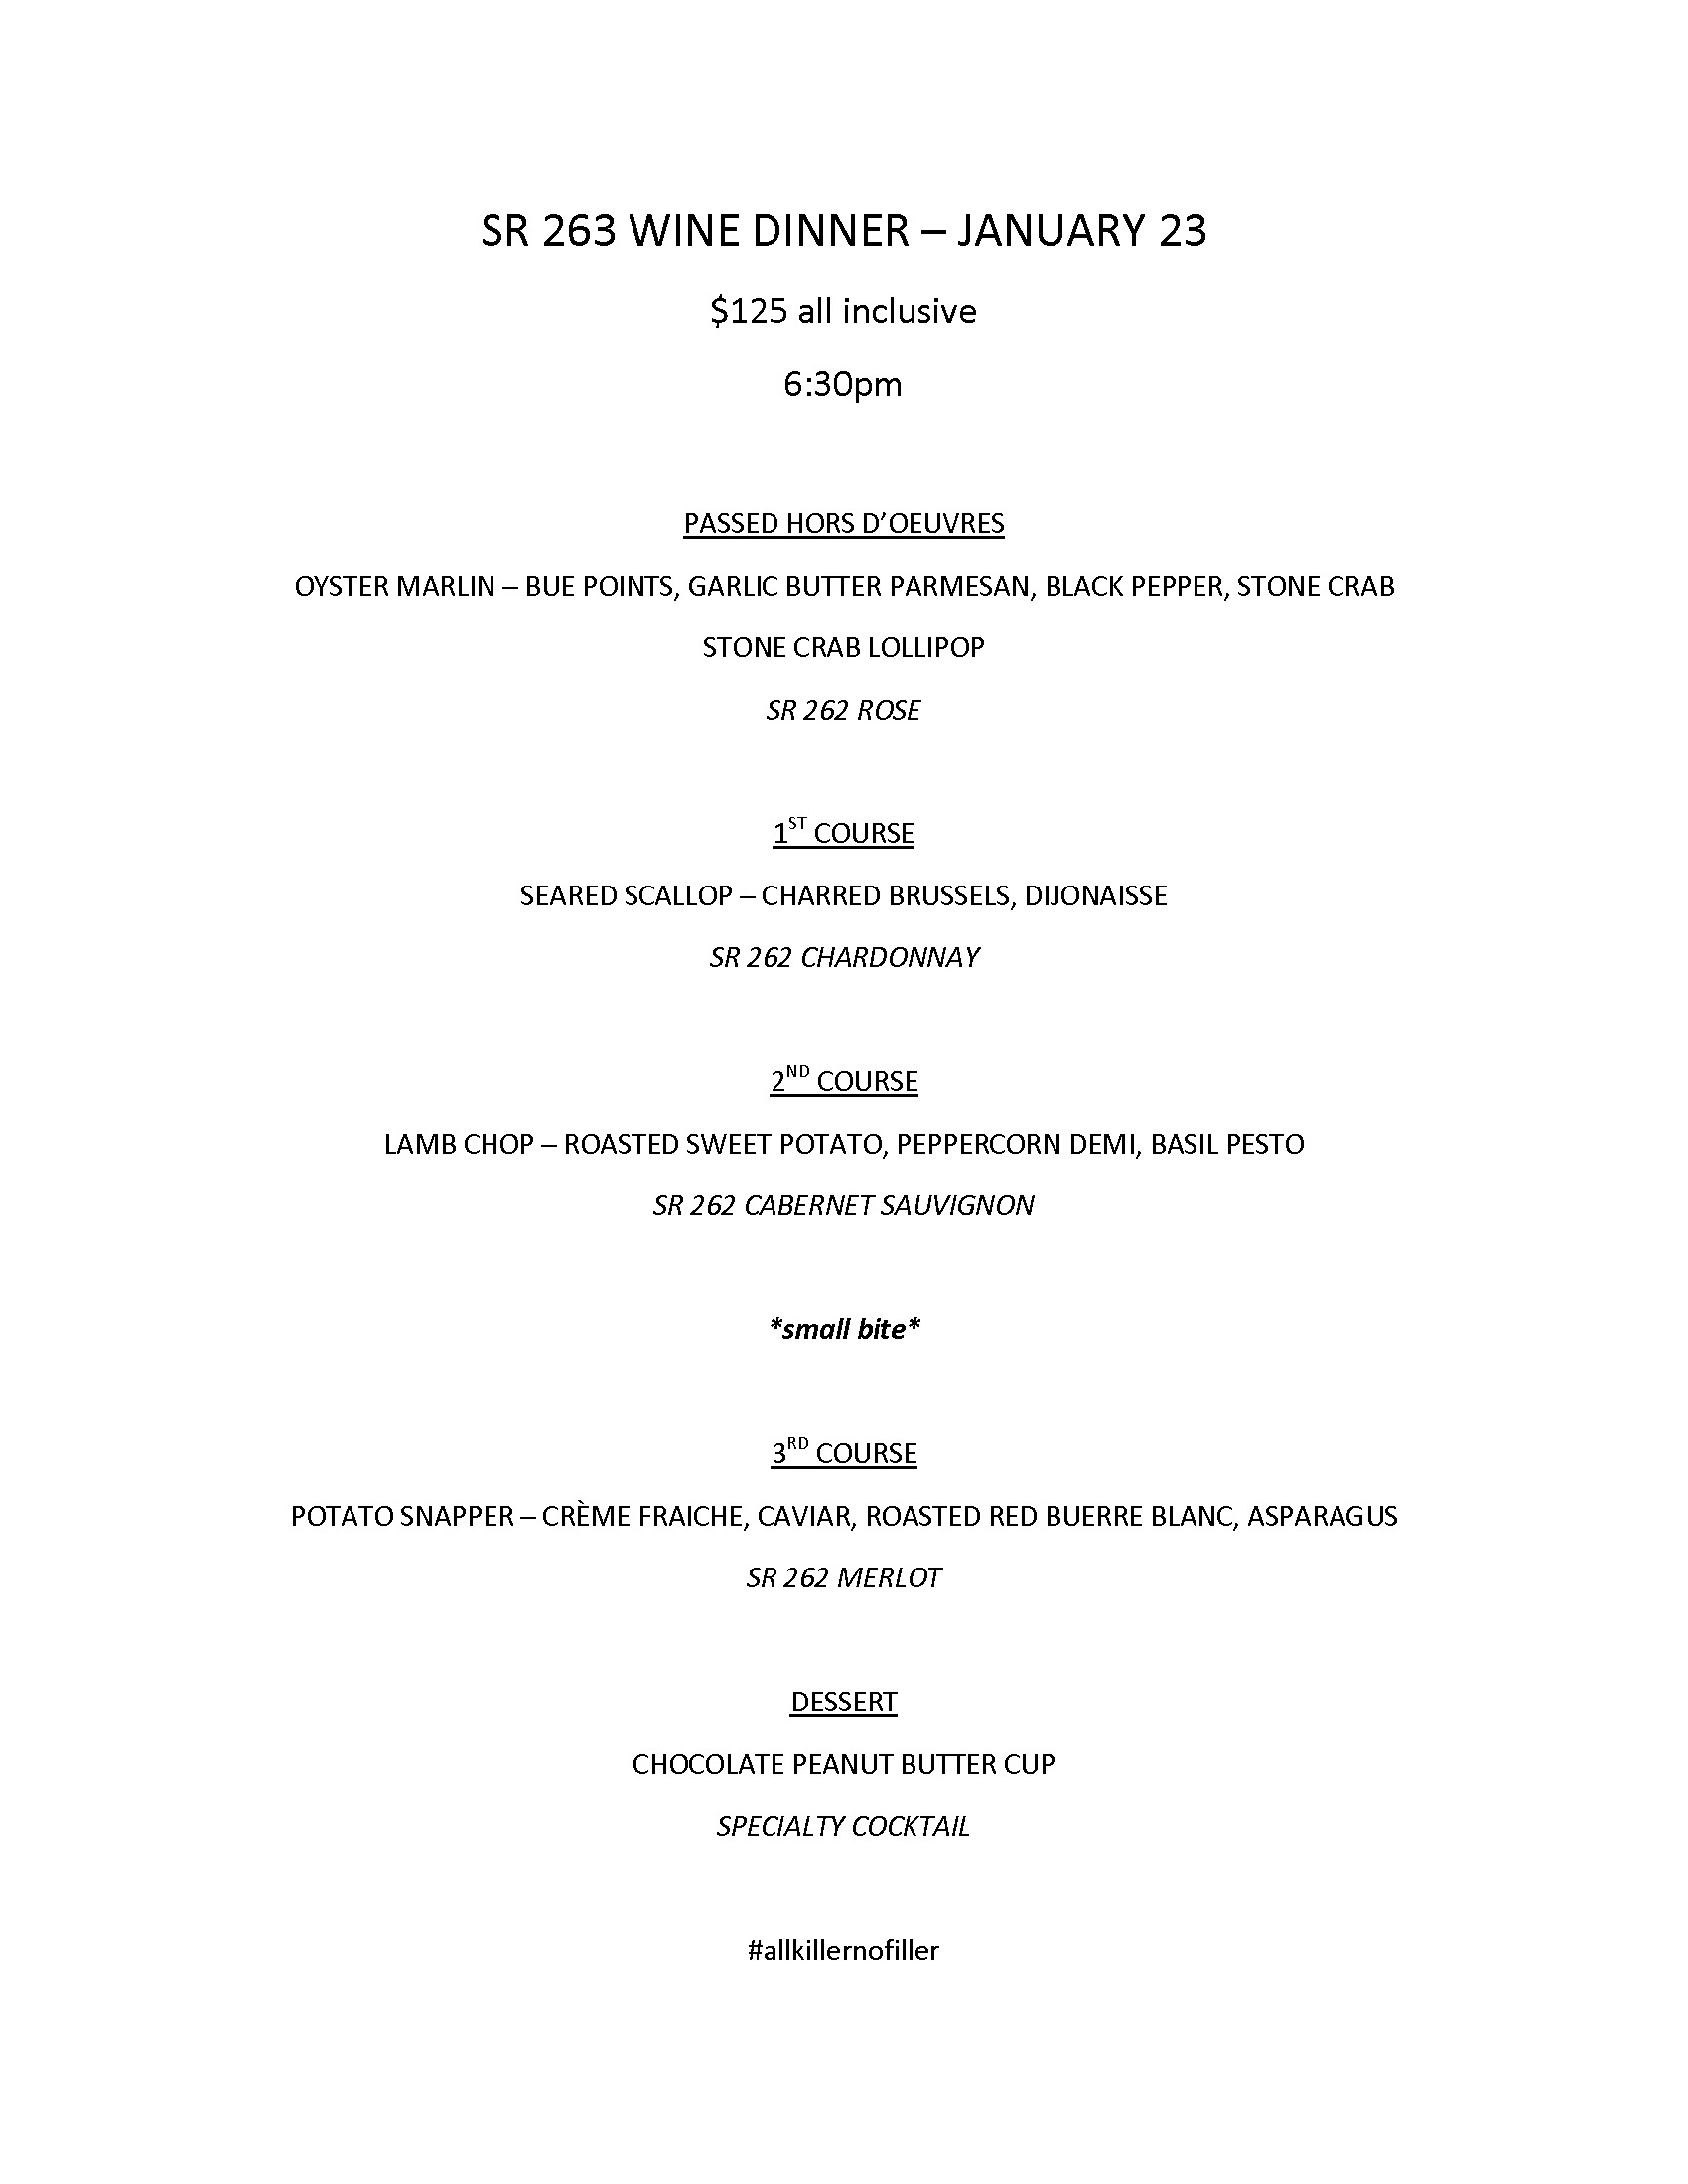 SR 262 DINNER JAN 23 MENU